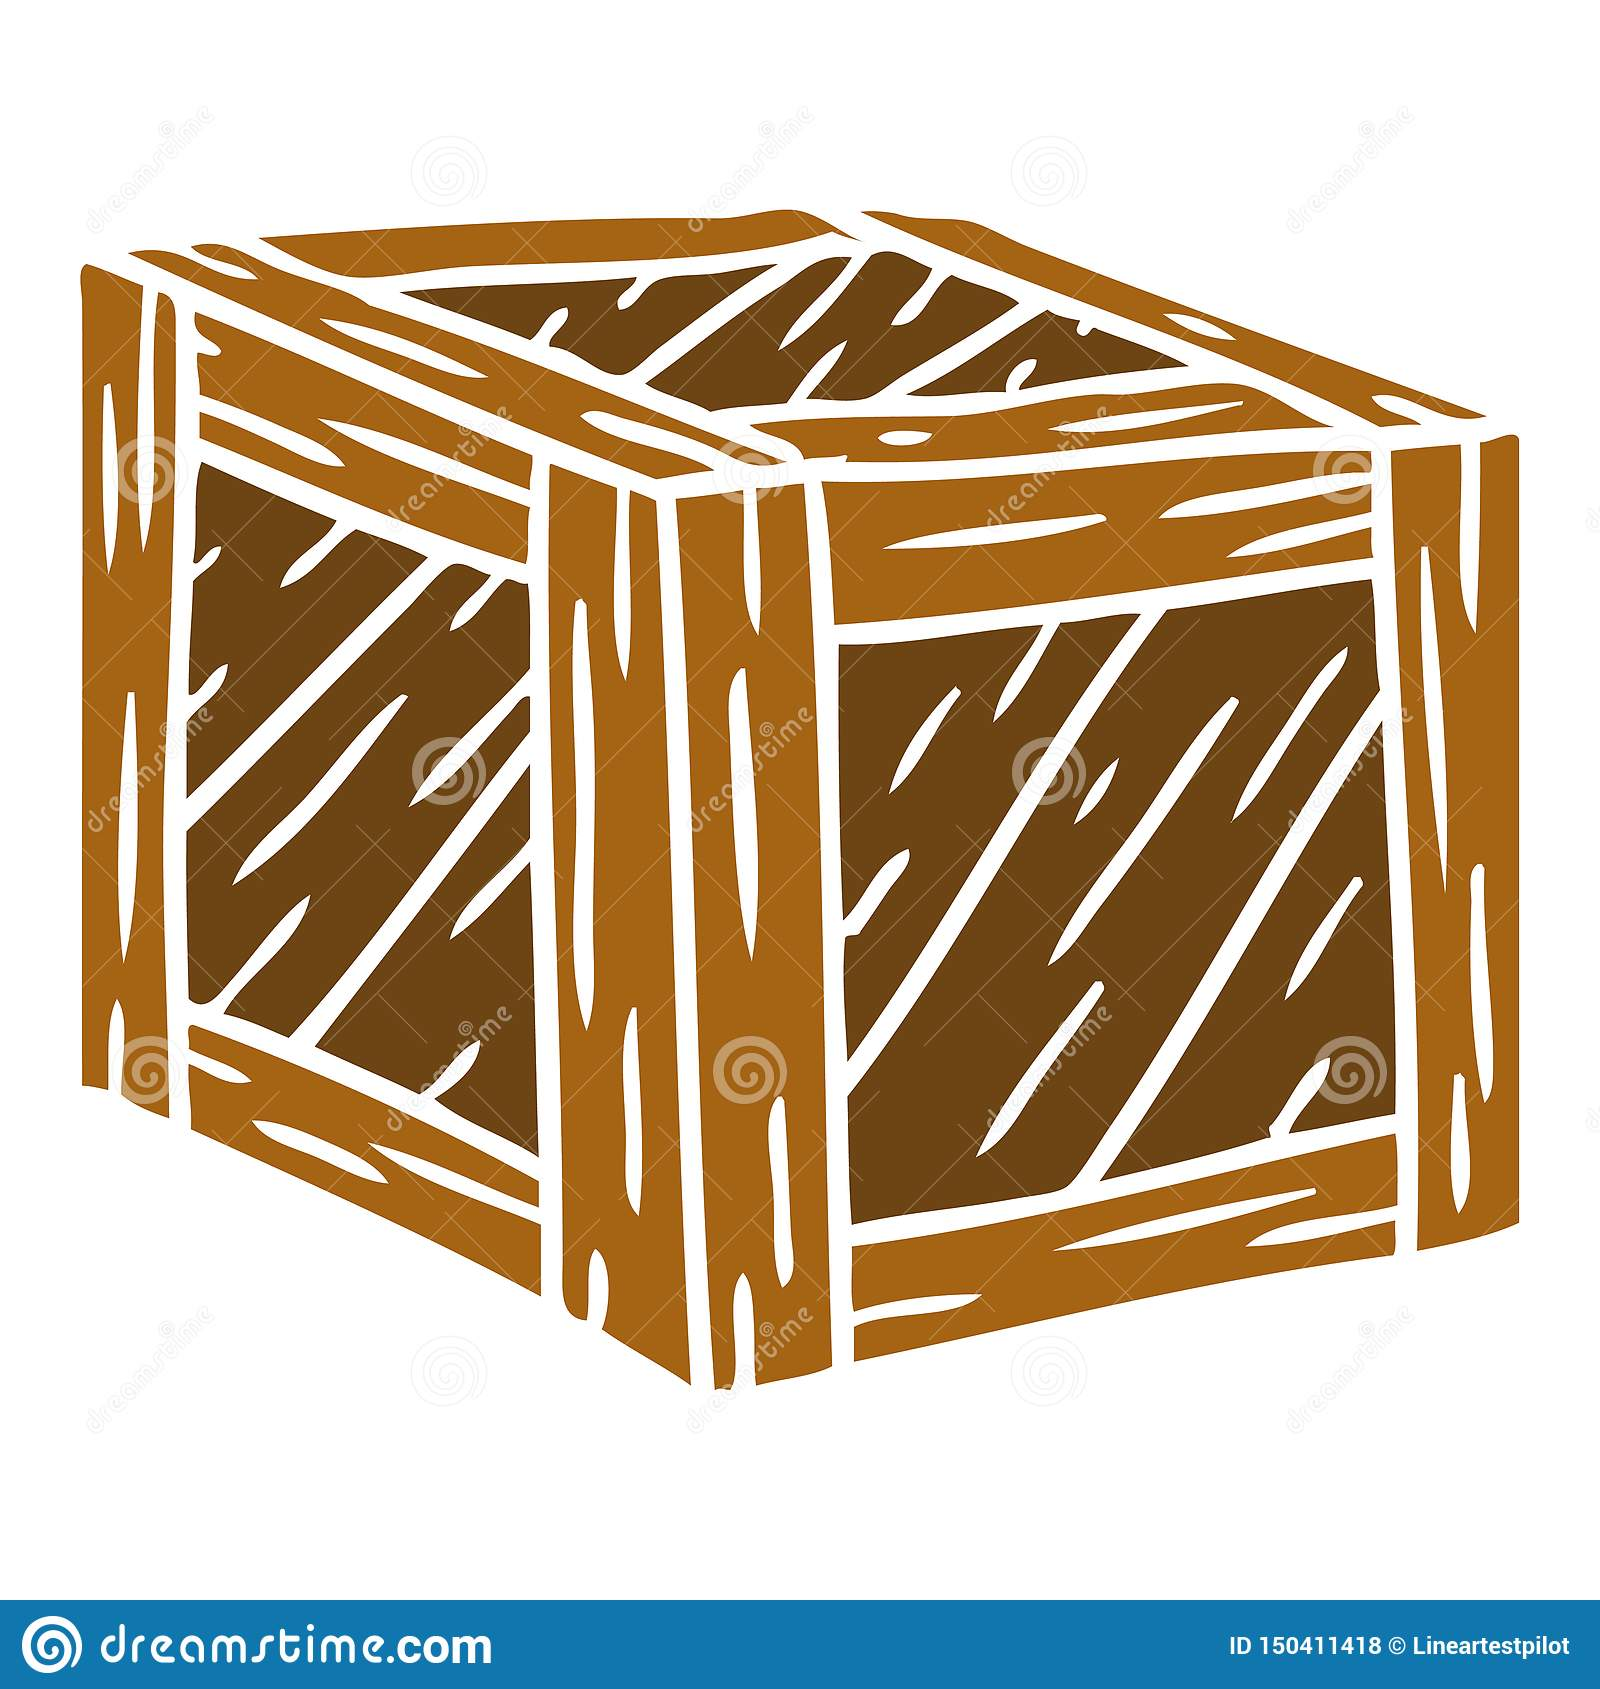 Cartoon Wooden Crate Box Wood Free Hand Drawn Doodle Clip Art.